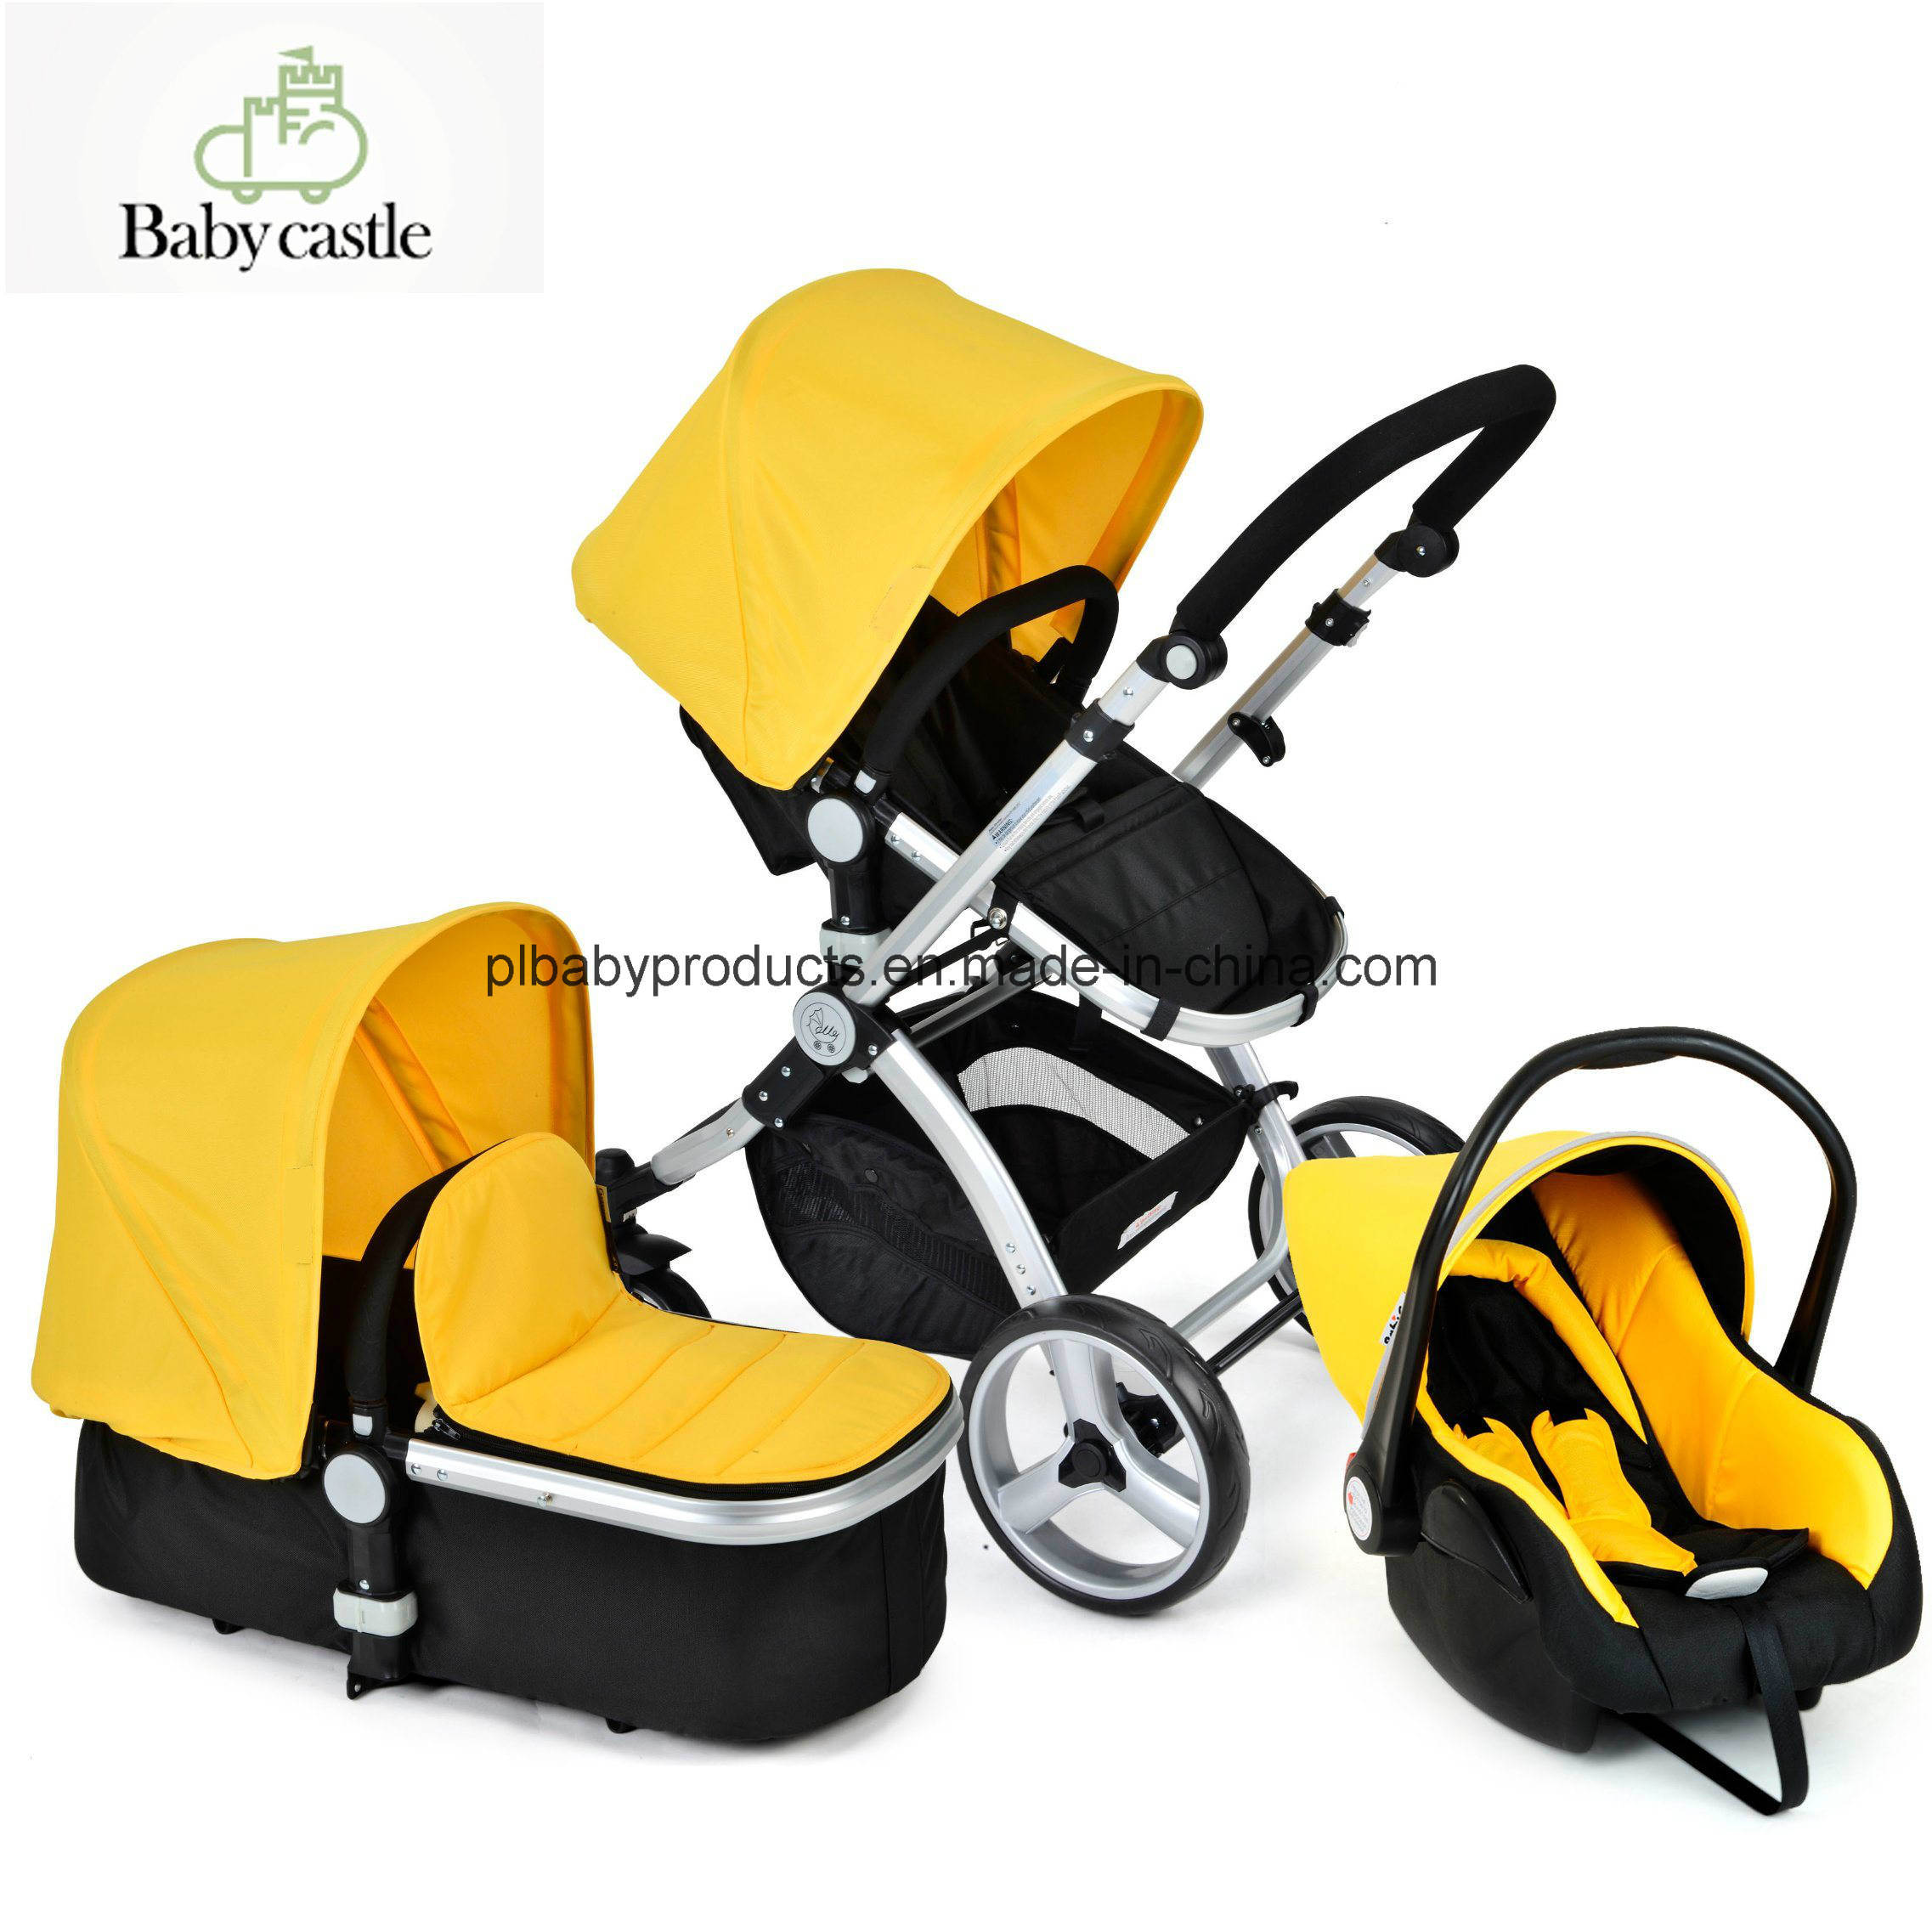 Car Seat Carrier Stroller Hot Item European Standard Style Baby Jogger Stroller With Car Seat And Carrier Yellow